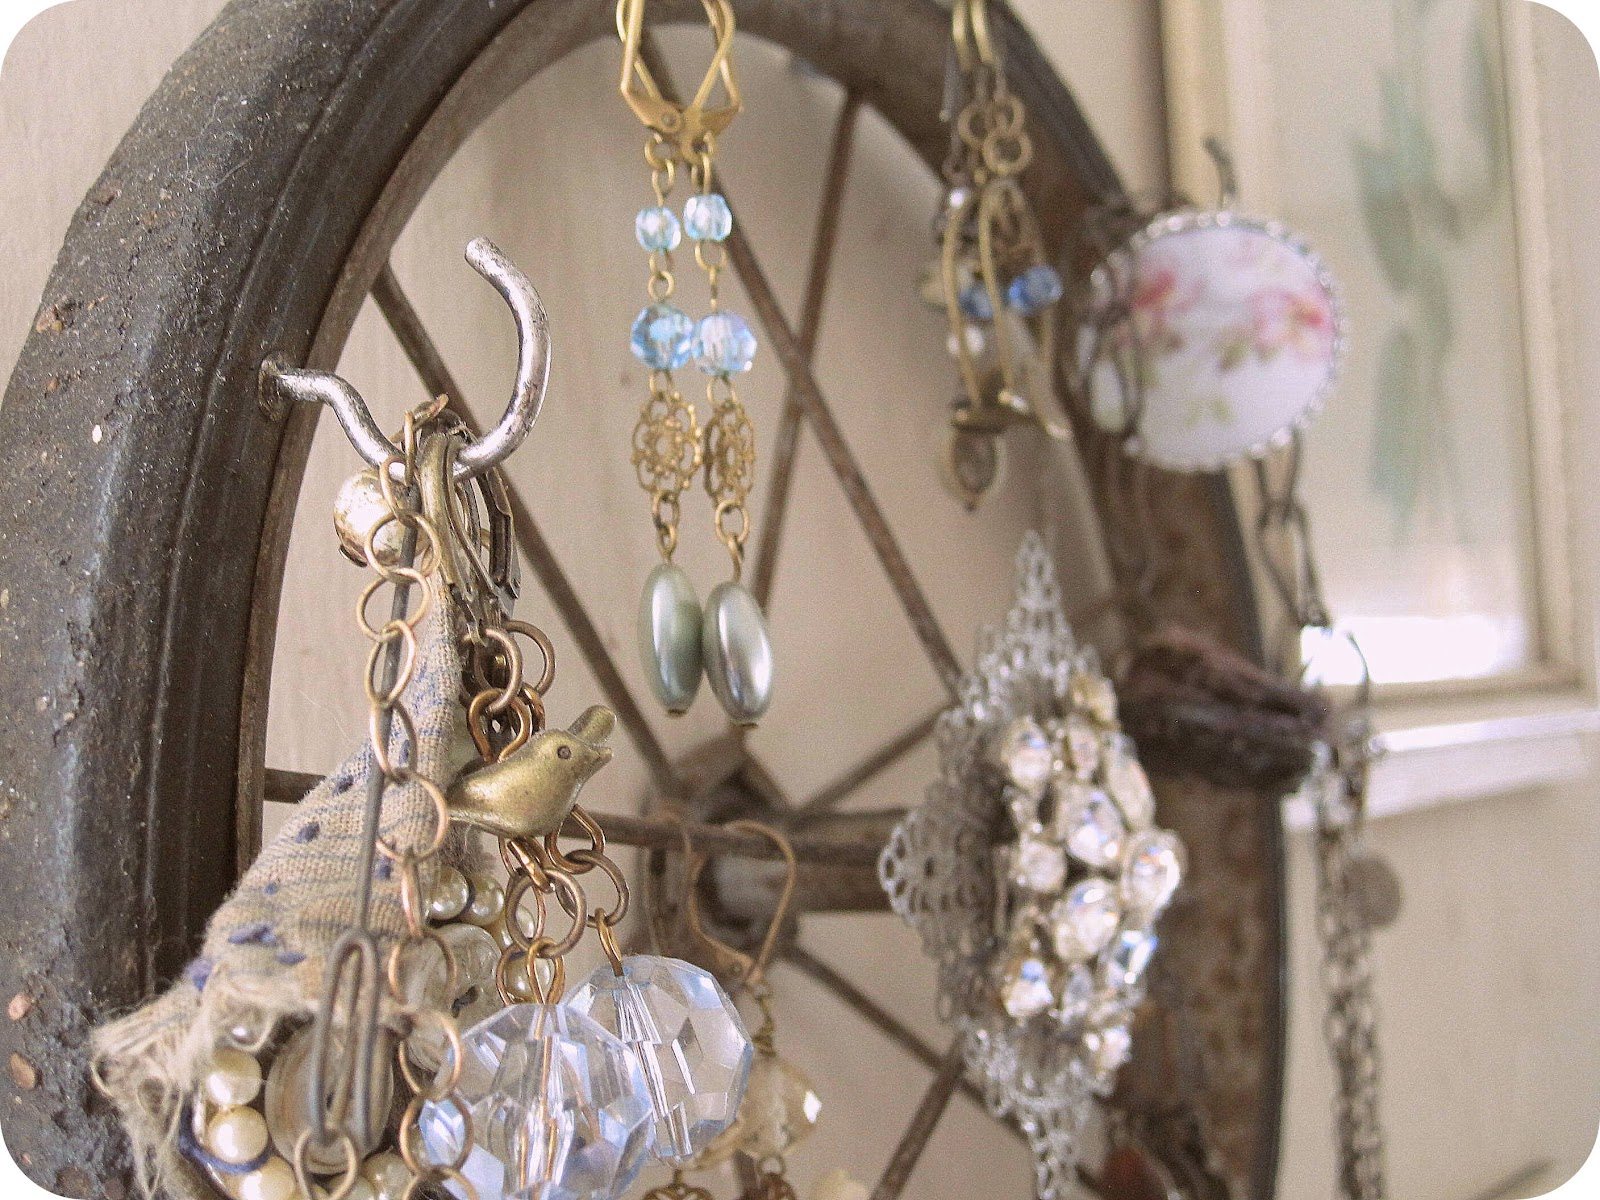 Shabby chic jewelry storage and display idea made from an old rusty wheel for hanging all kinds of jewels.